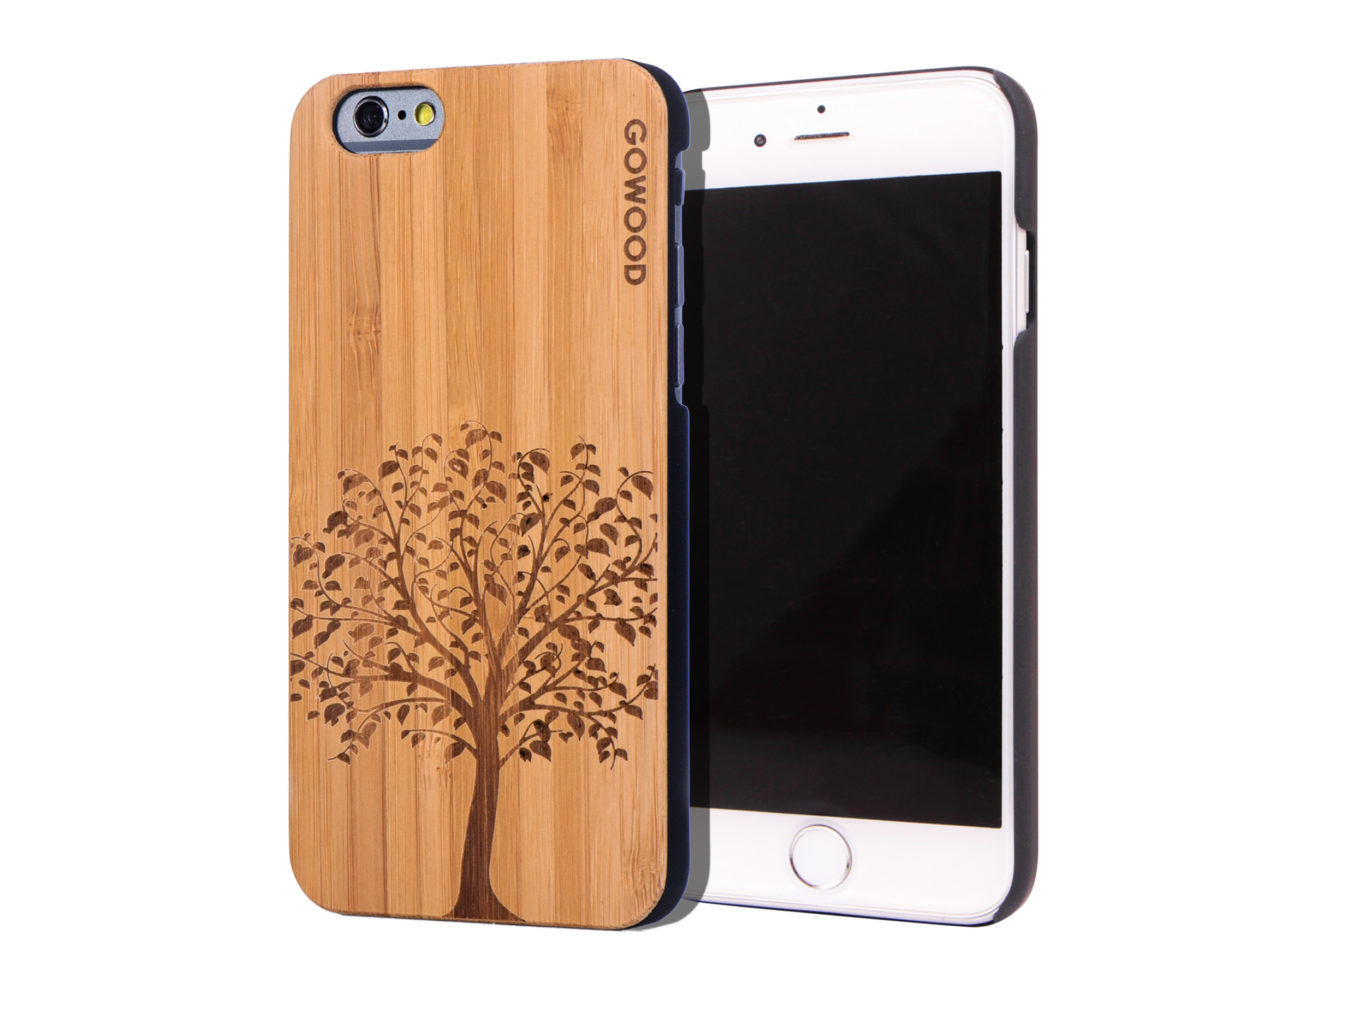 iphone wood case iphone 6 wood backside with tree and pc sides gw 12505